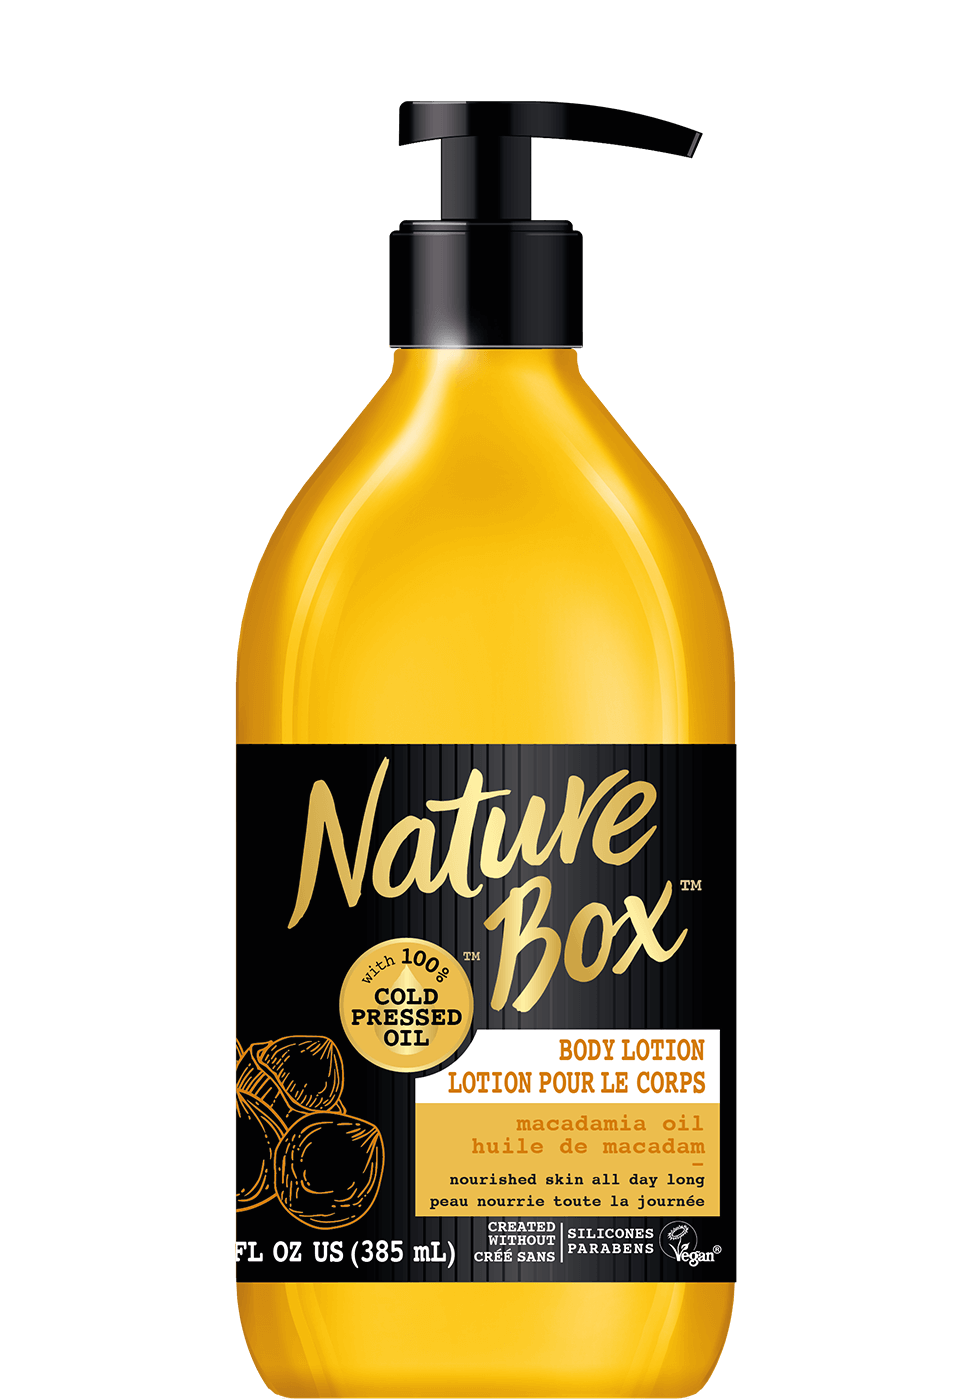 naturebox_us_macadamia_body_lotion_970x1400